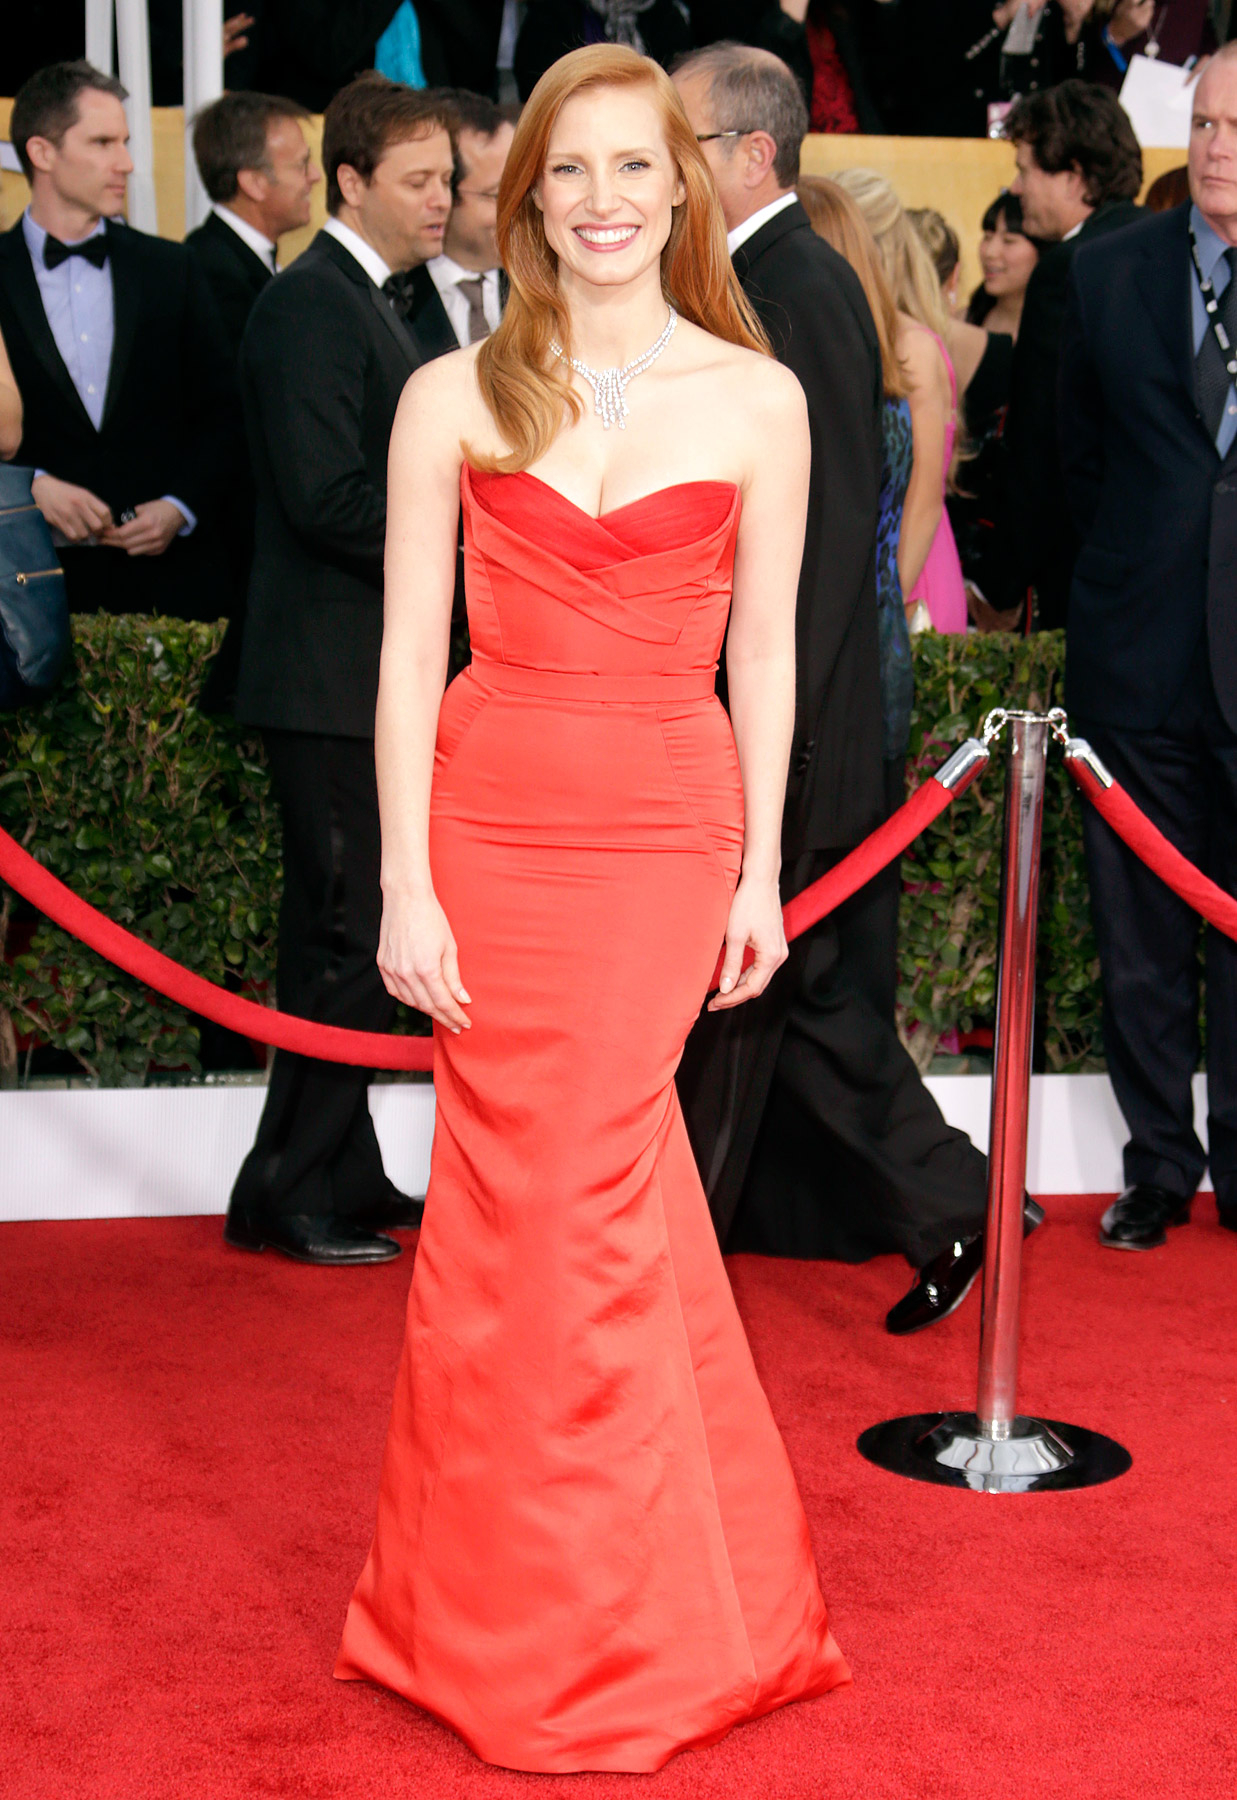 Sag Awards The Best And Worst Dressed Of All Time